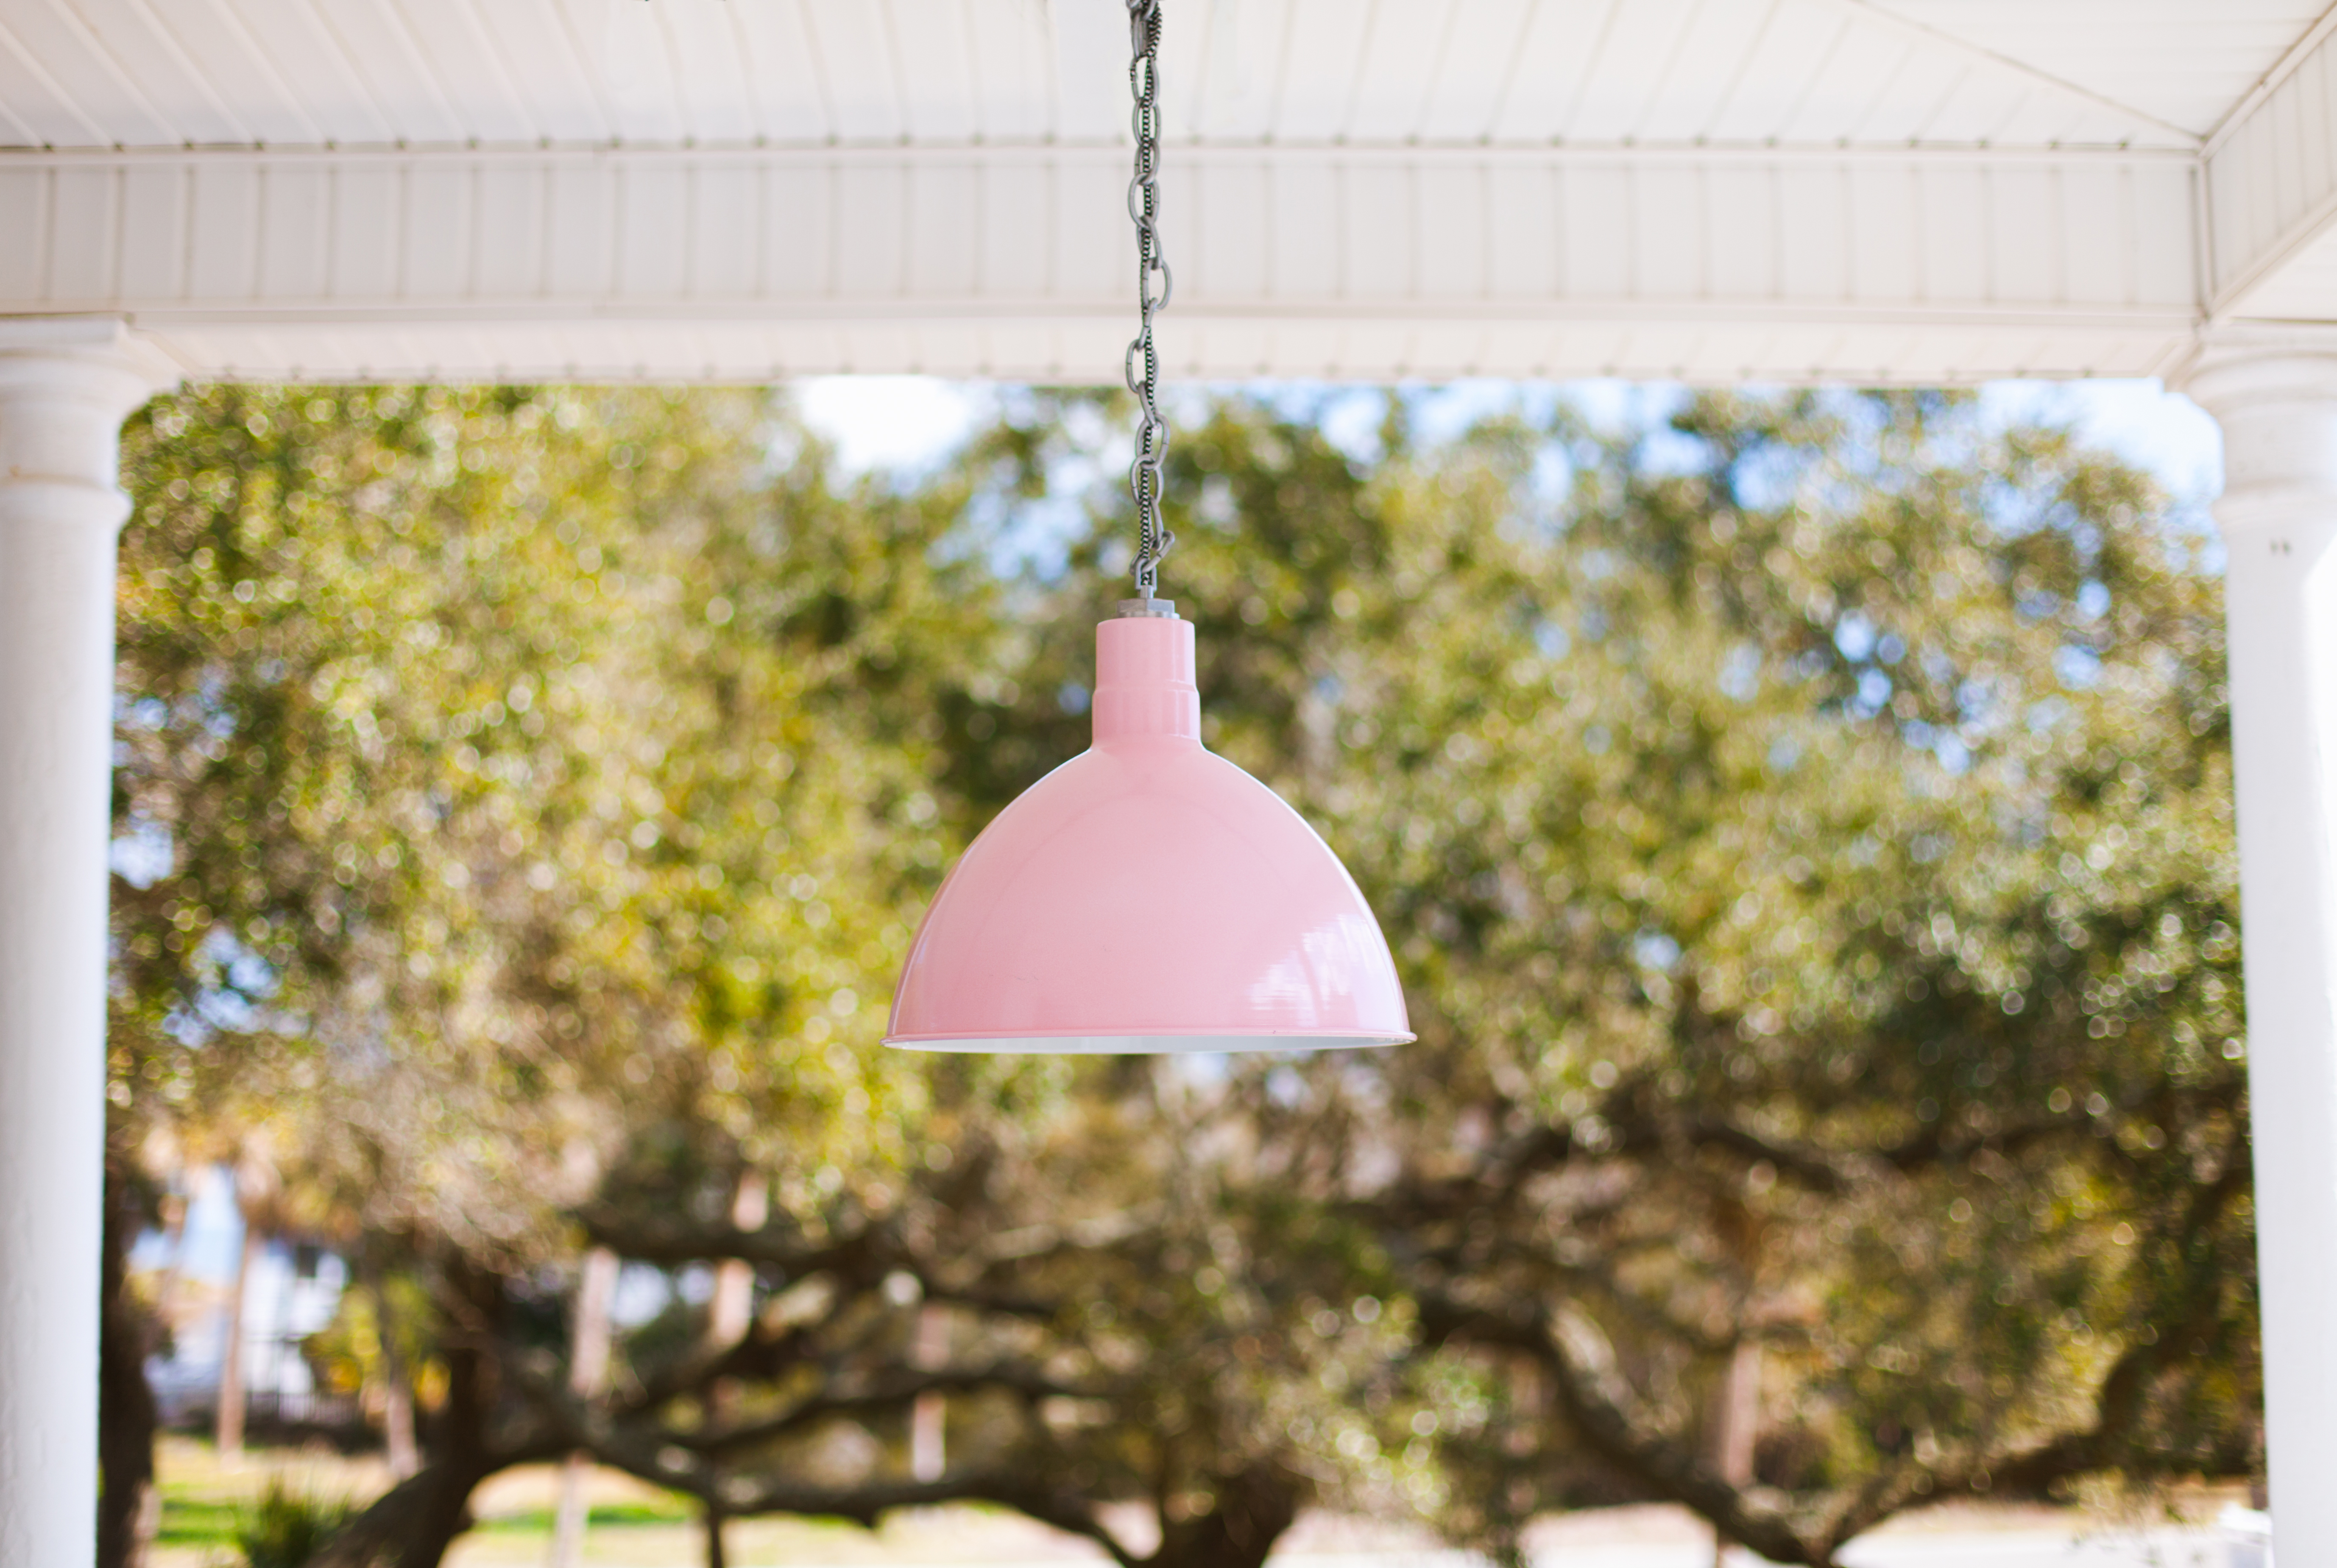 Chain hung Wesco pendant in blush pink!